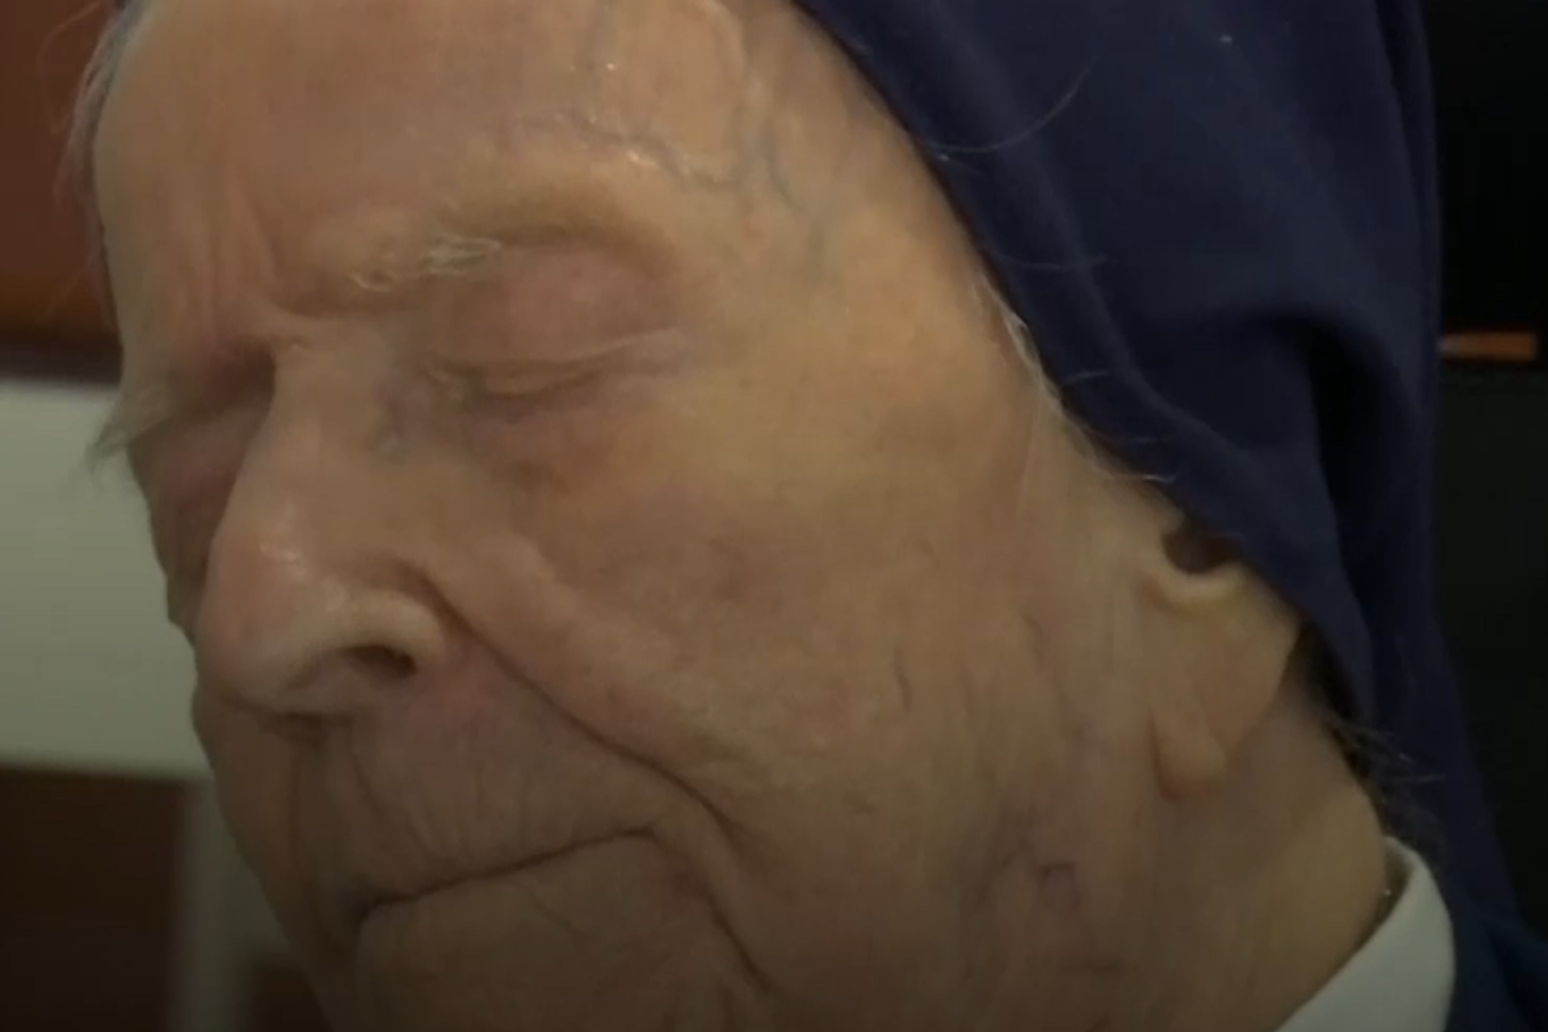 Second-oldest known living person in the world, 116, survives coronavirus